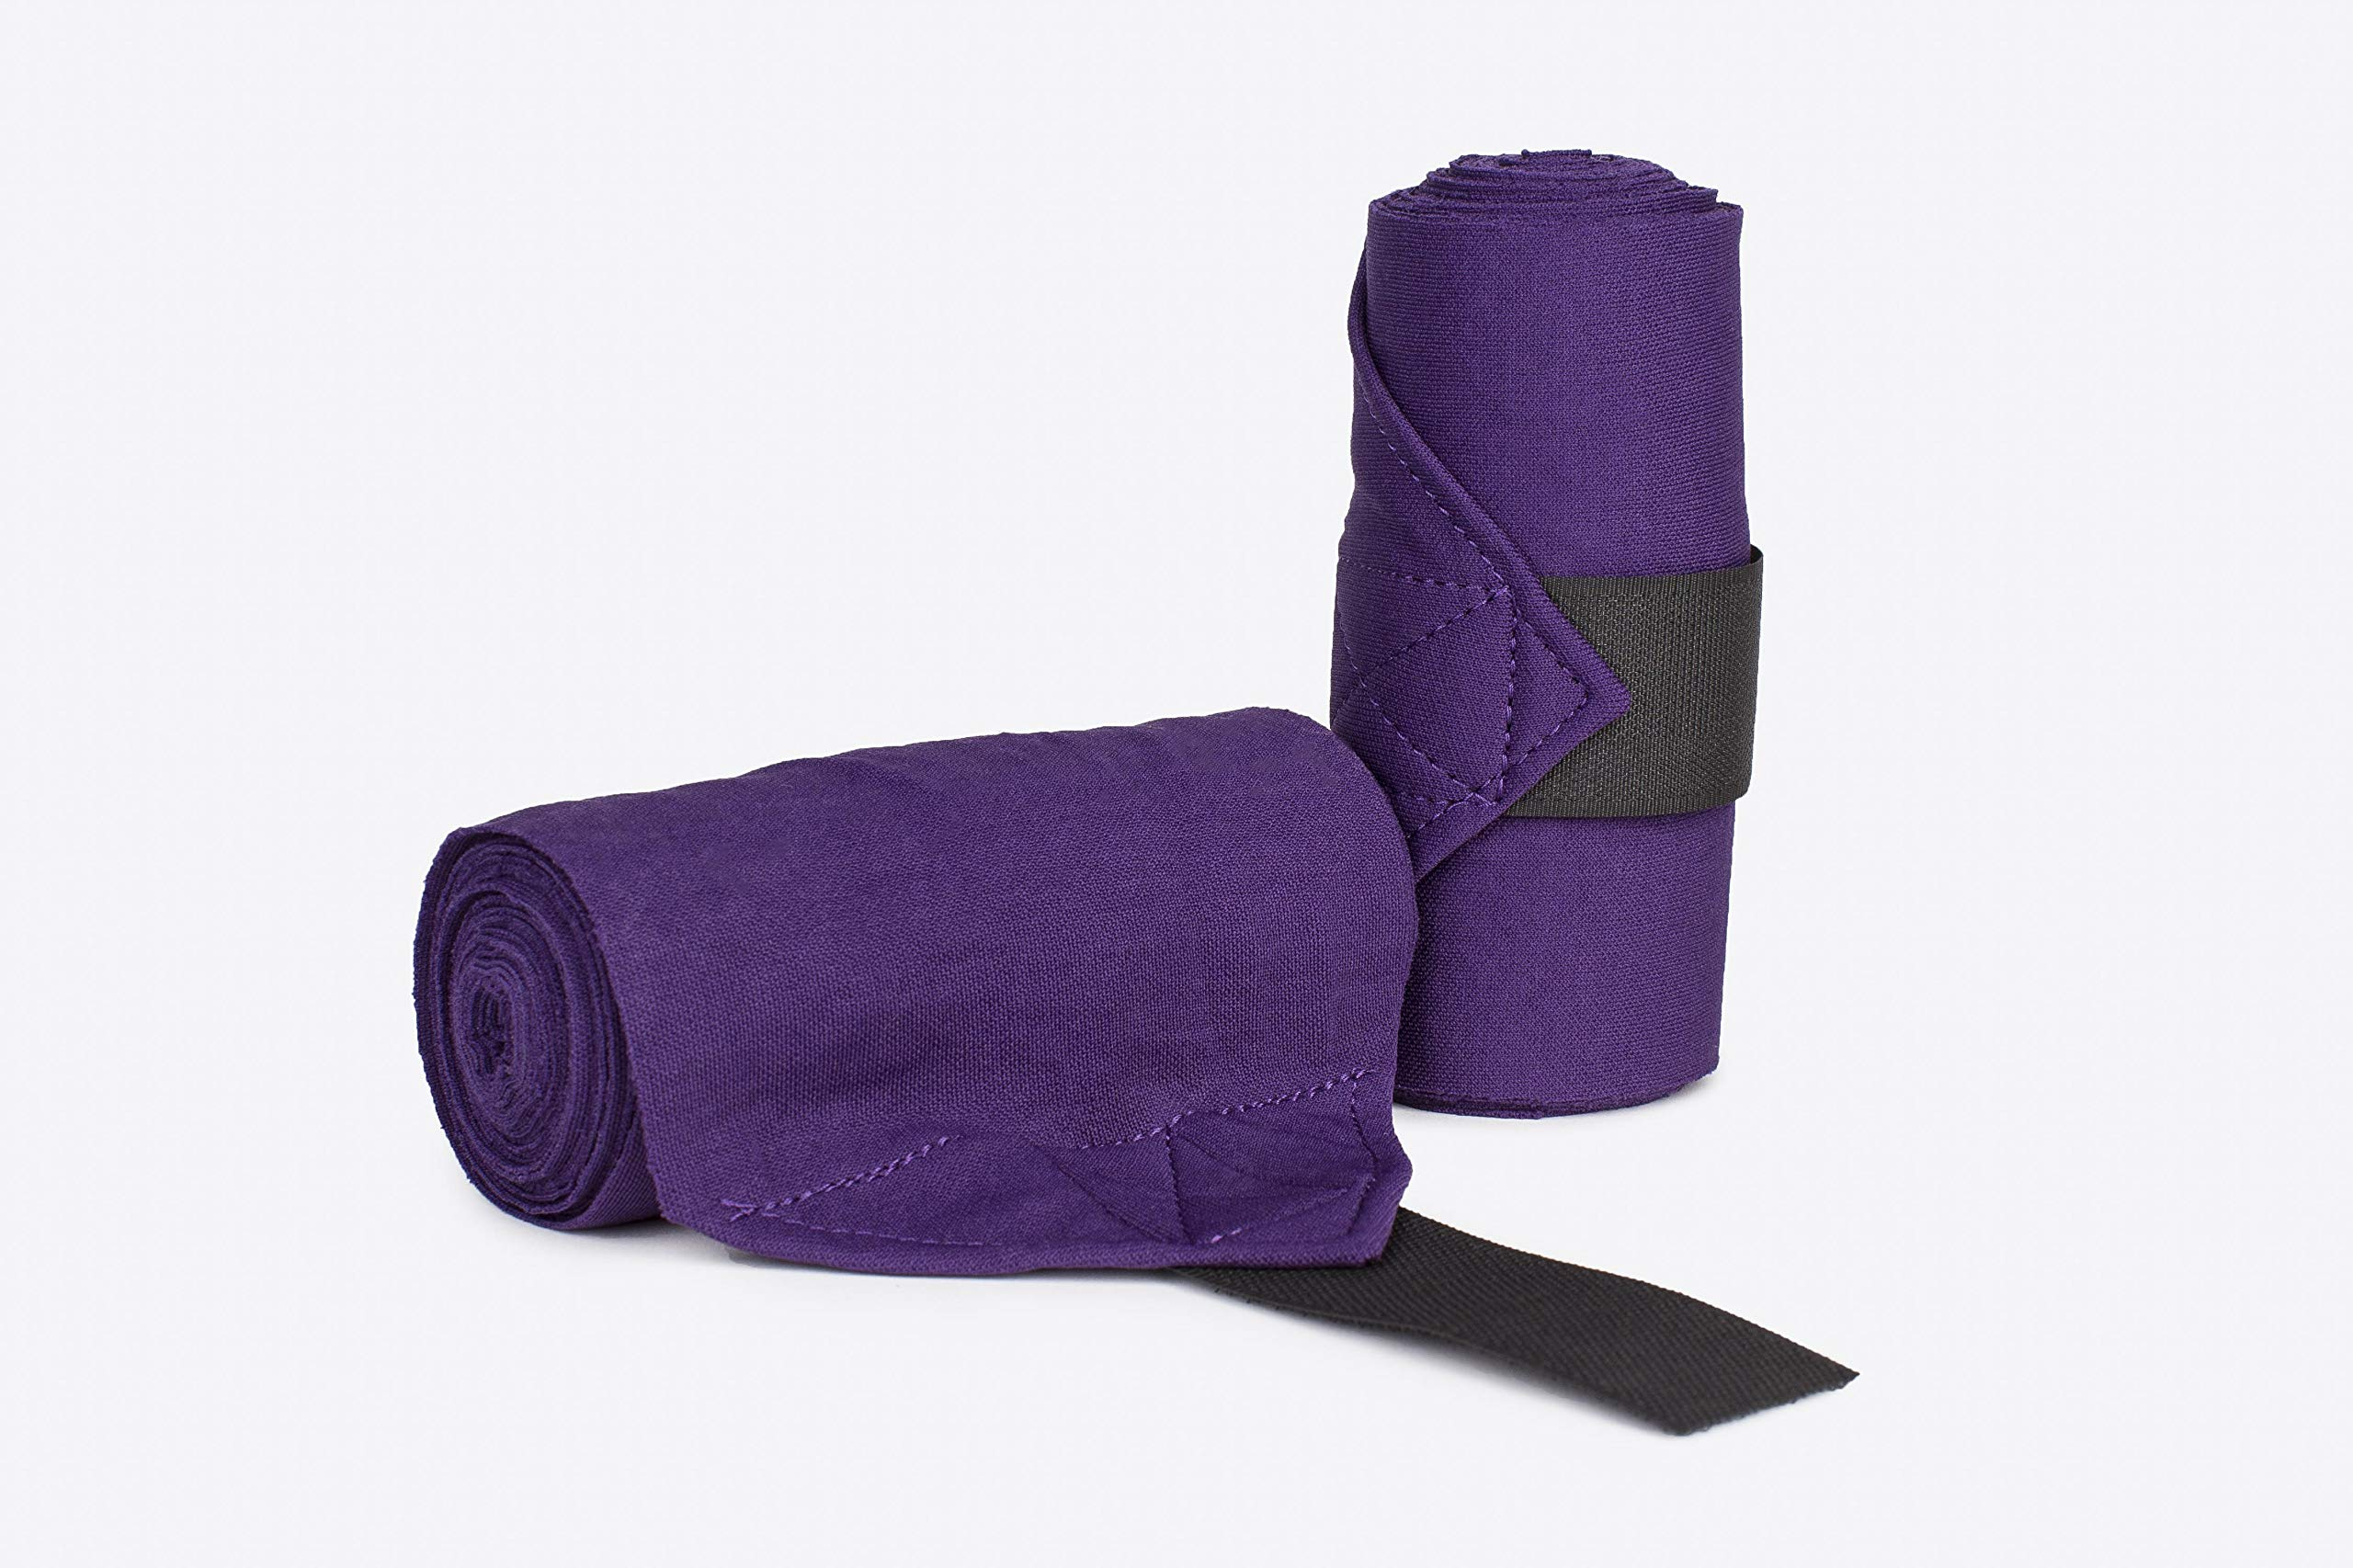 Union Hill Lettia 9; Long Standing Wrap with 250g Fill in Stretchable Material, by Union Hill